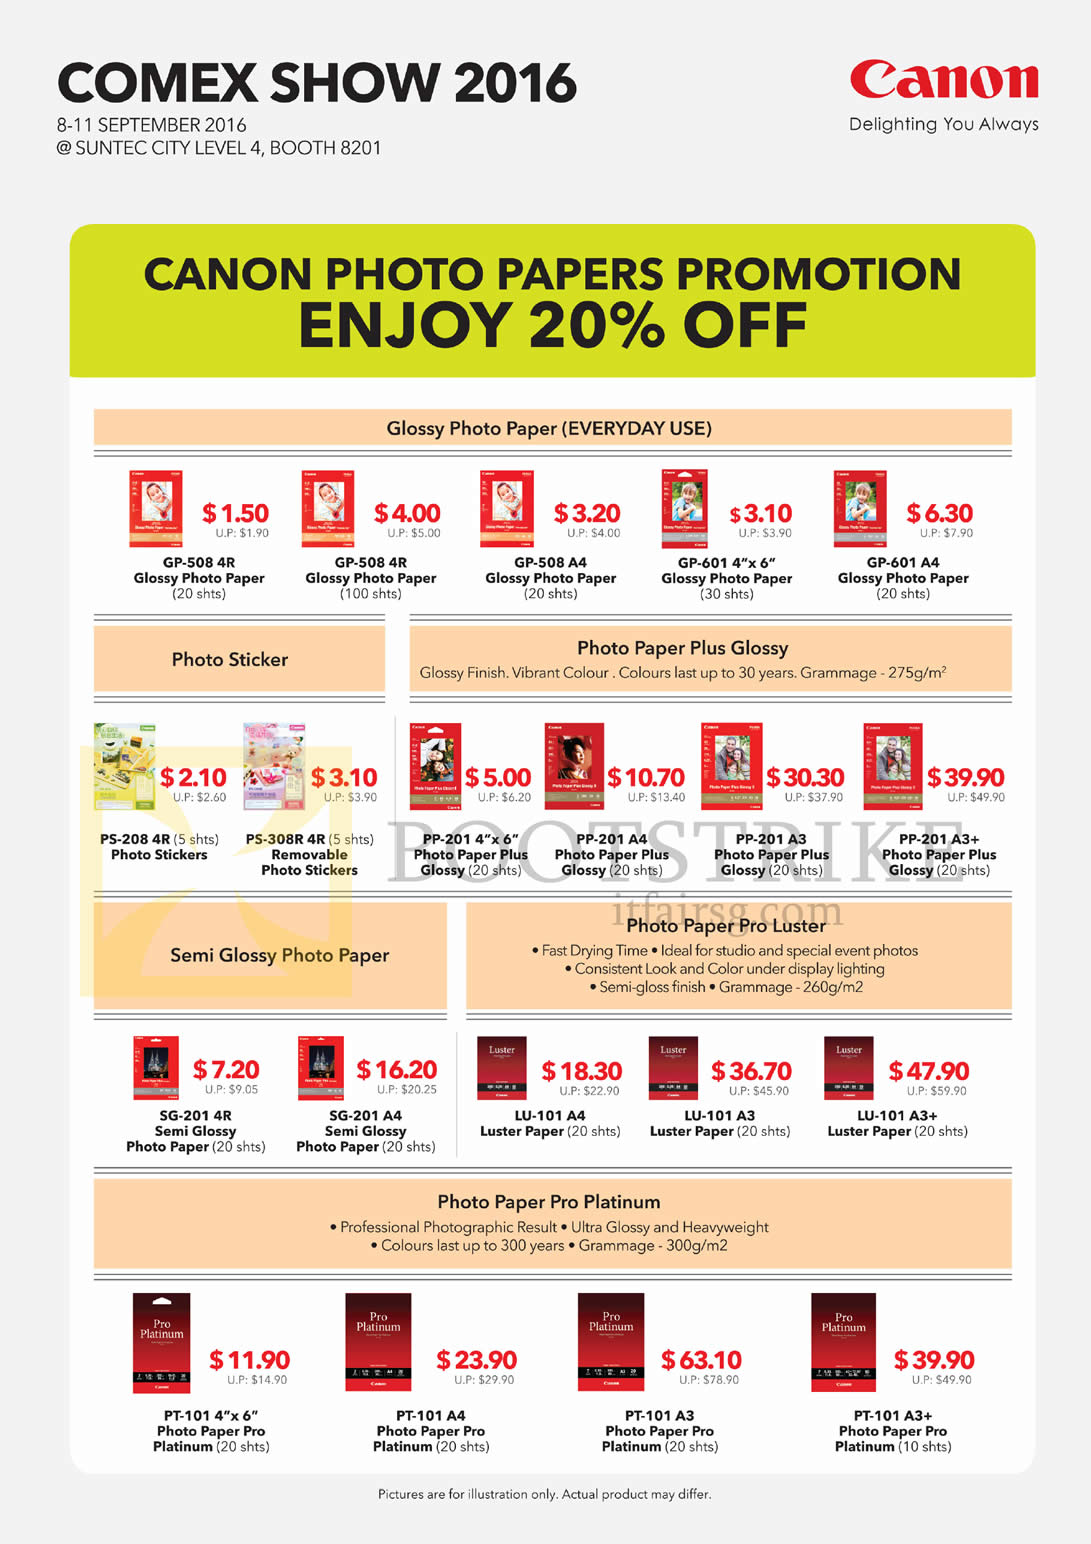 COMEX 2016 price list image brochure of Canon Photo Papers GP-508, 601, PS-208, PP-201, SG-201, LU-101, PT-101, Glossy, Photo Paper, Semi, Luster, Platinum